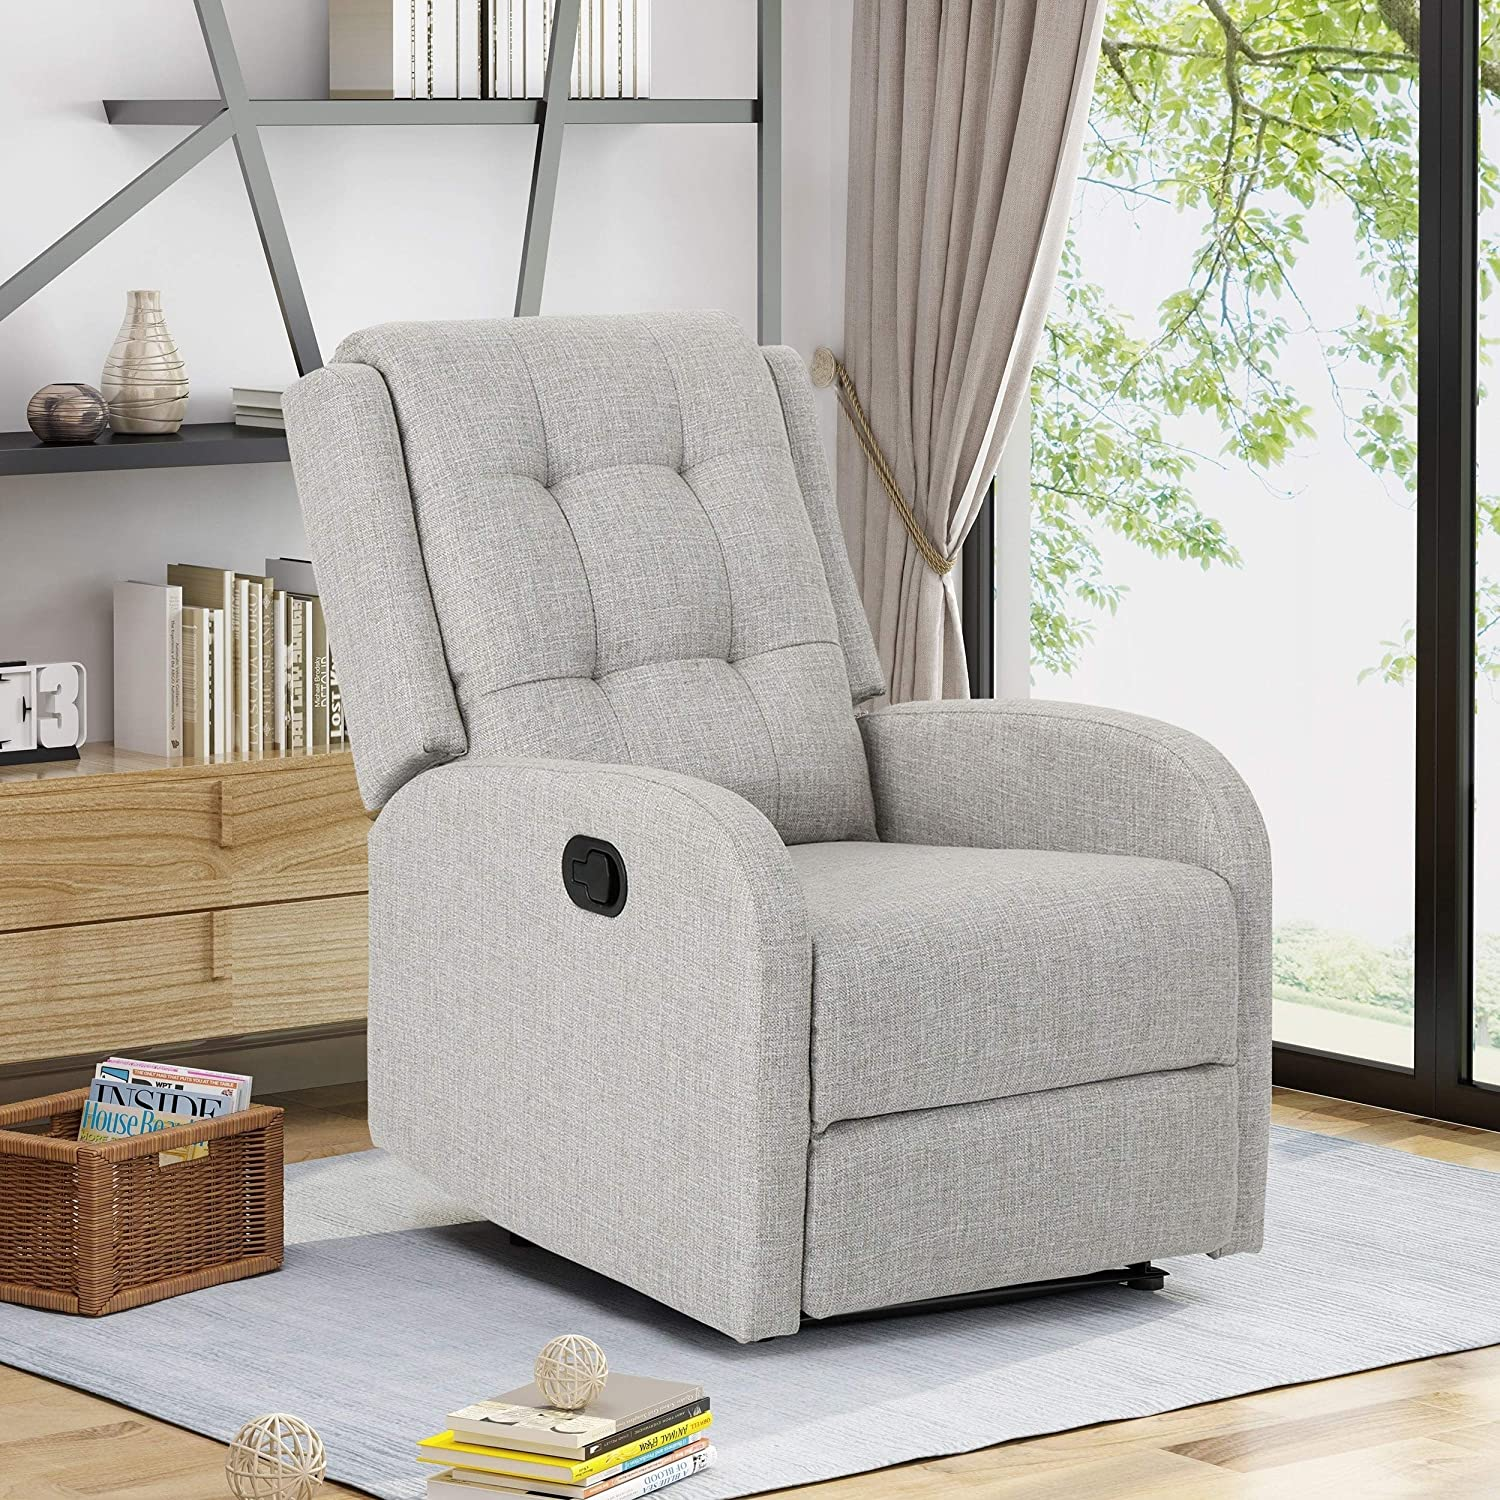 Noble House OLeary Upholstered Recliner in Beige and Black